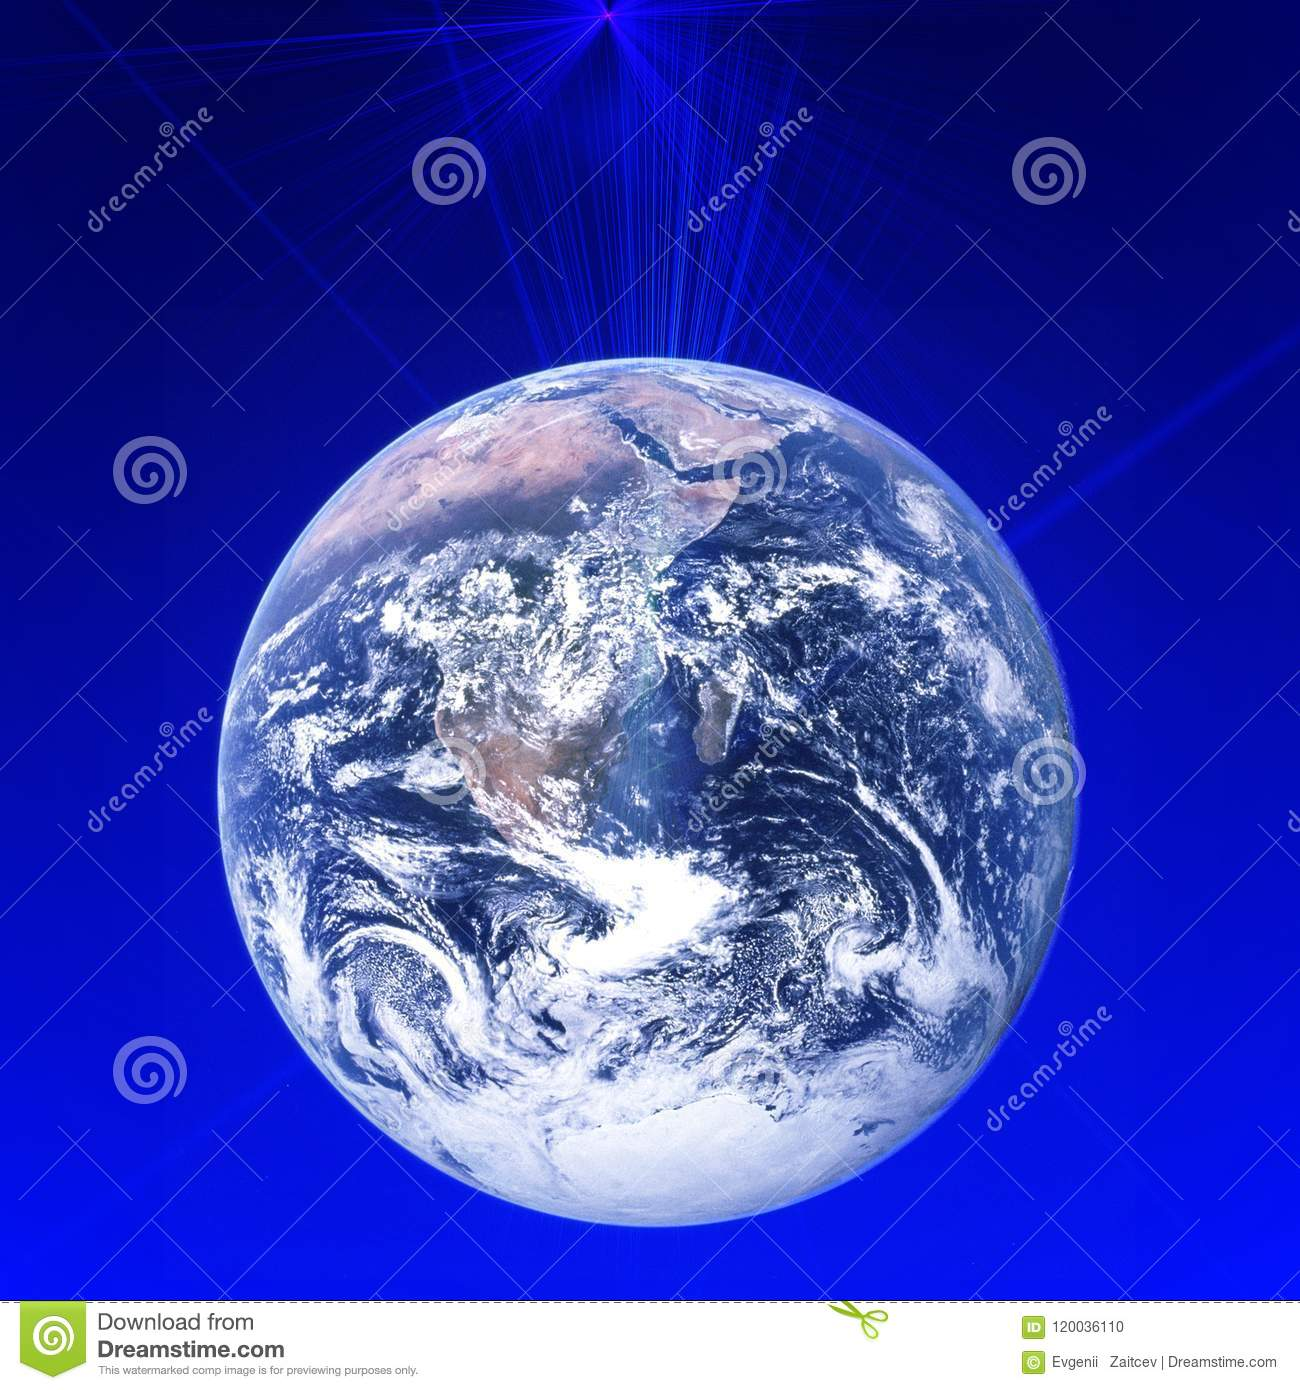 Worldwide global communication network around planet Earth. High speed data and internet connection.Modern technology for busine